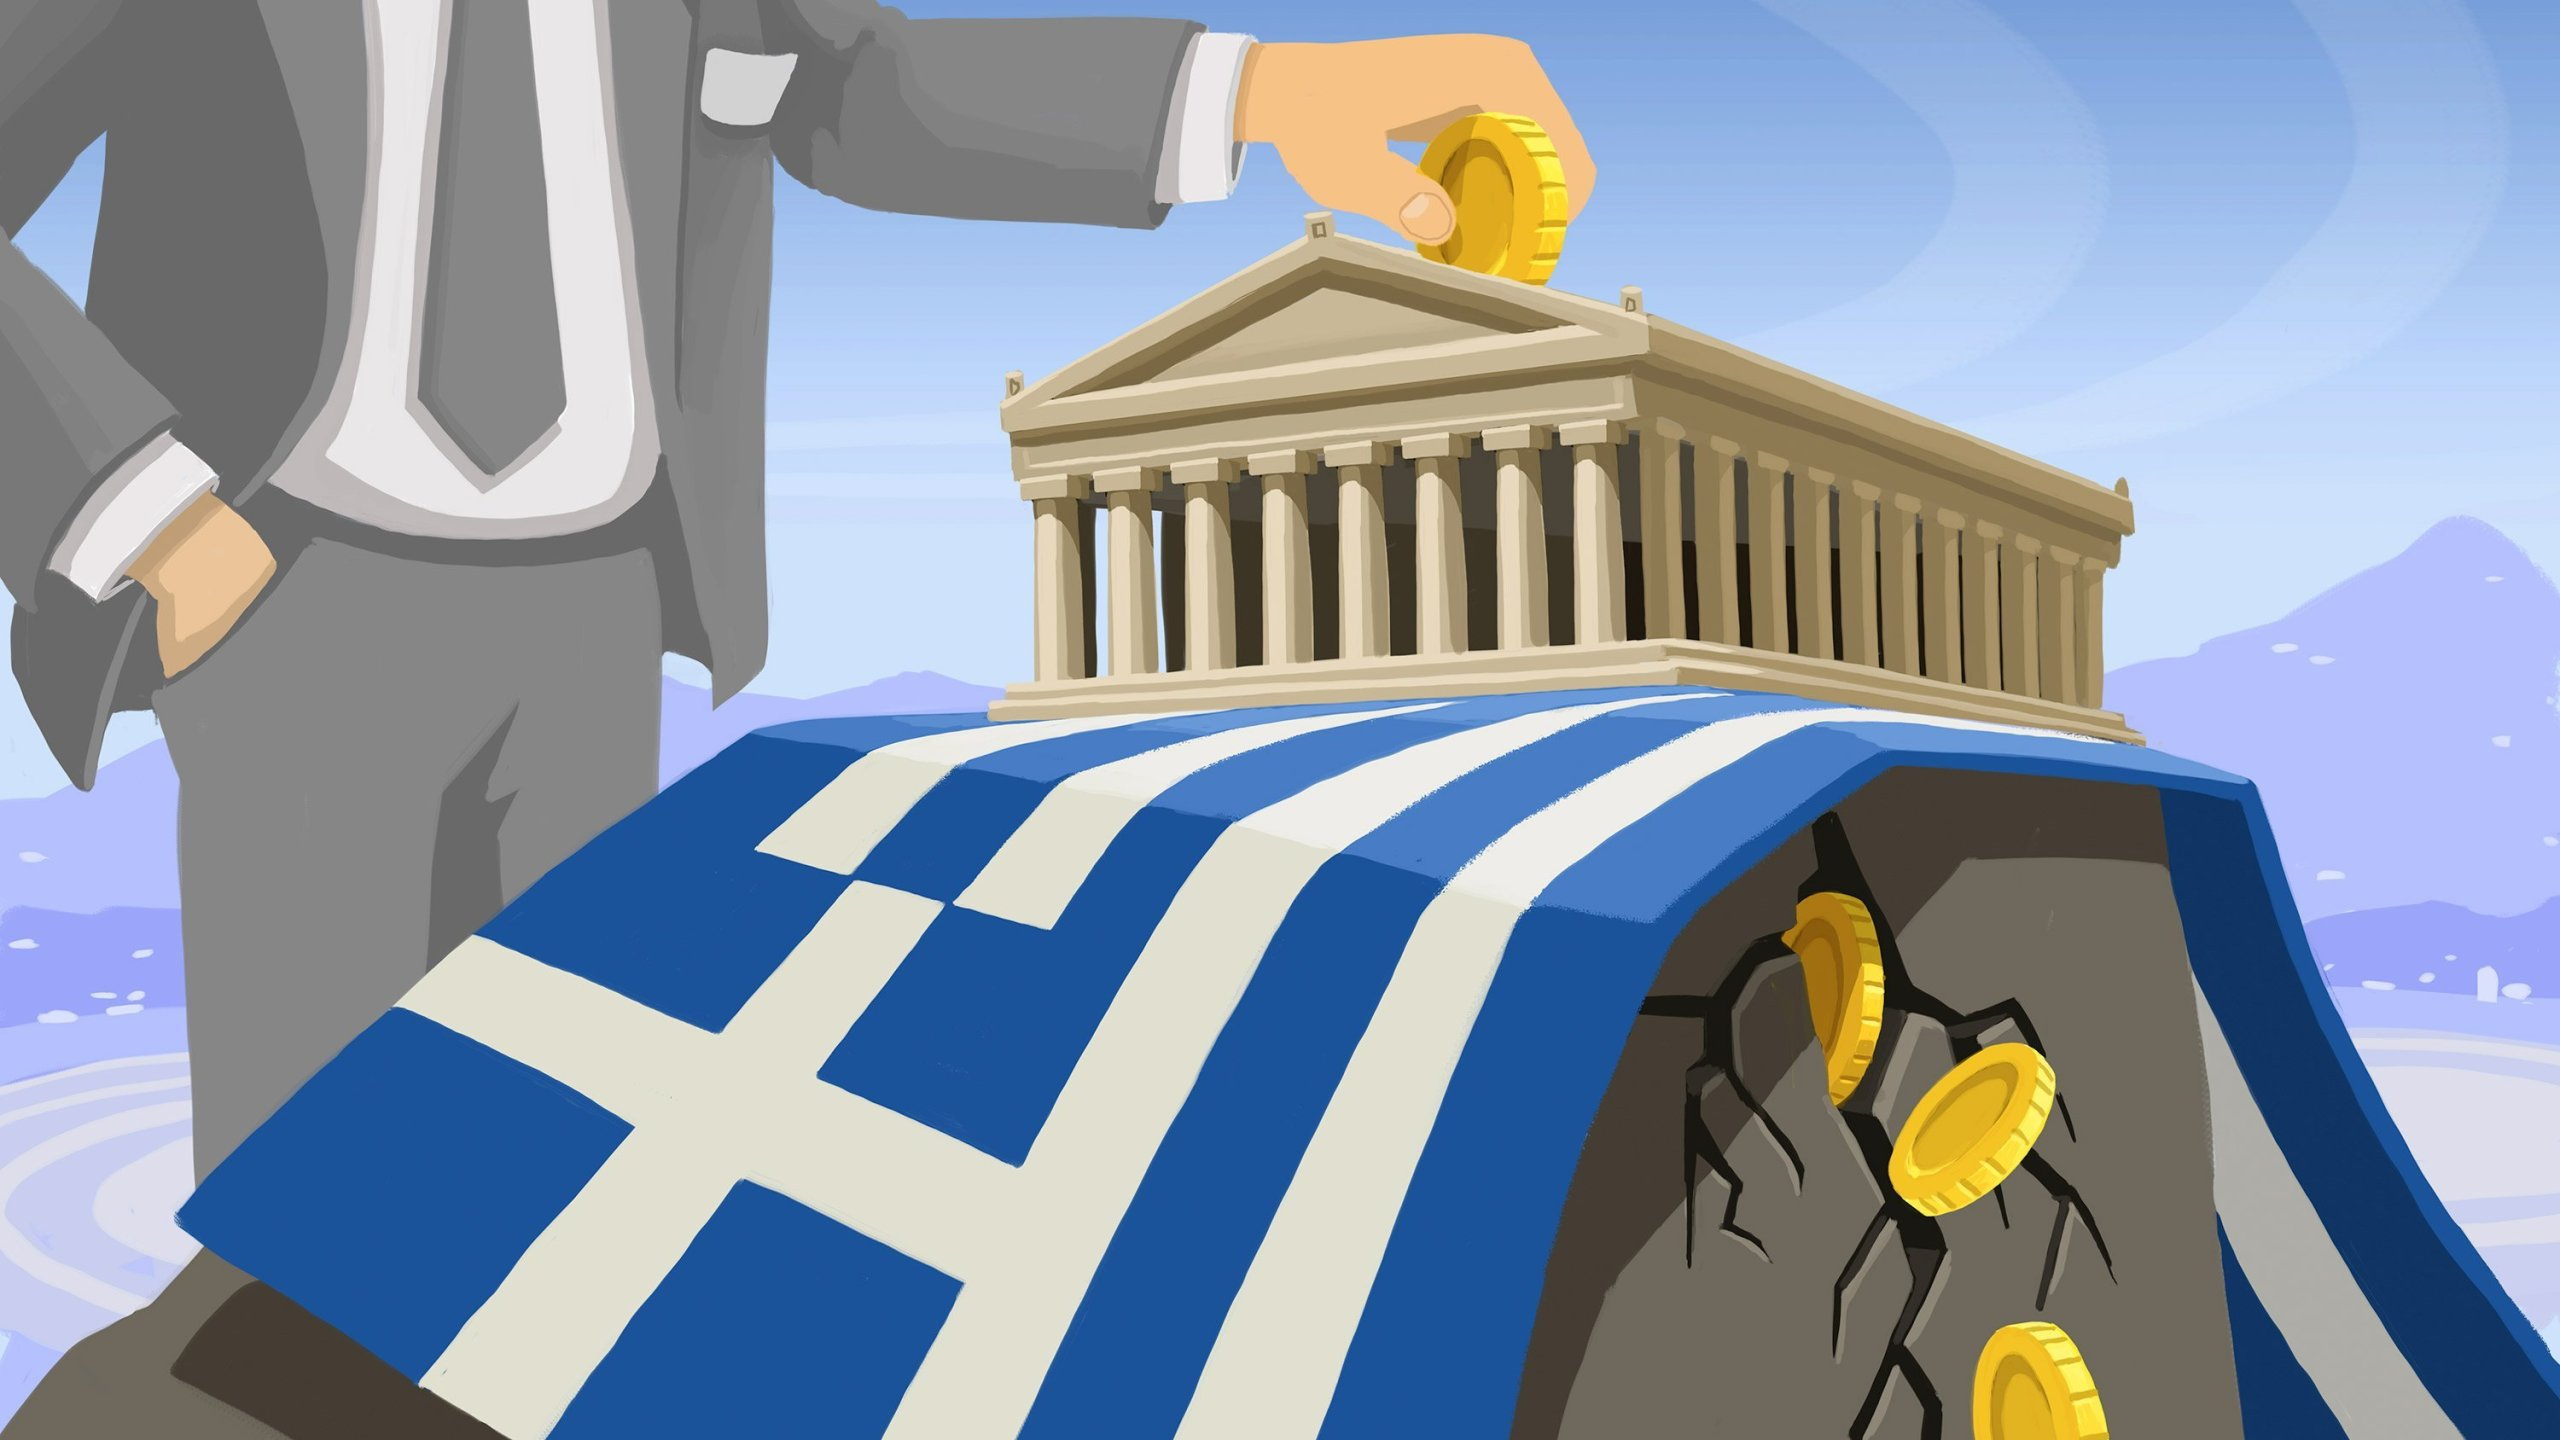 Wall Street is betting that there's about a 75% chance that Greece defaults on its debt. (Photo: CNN)